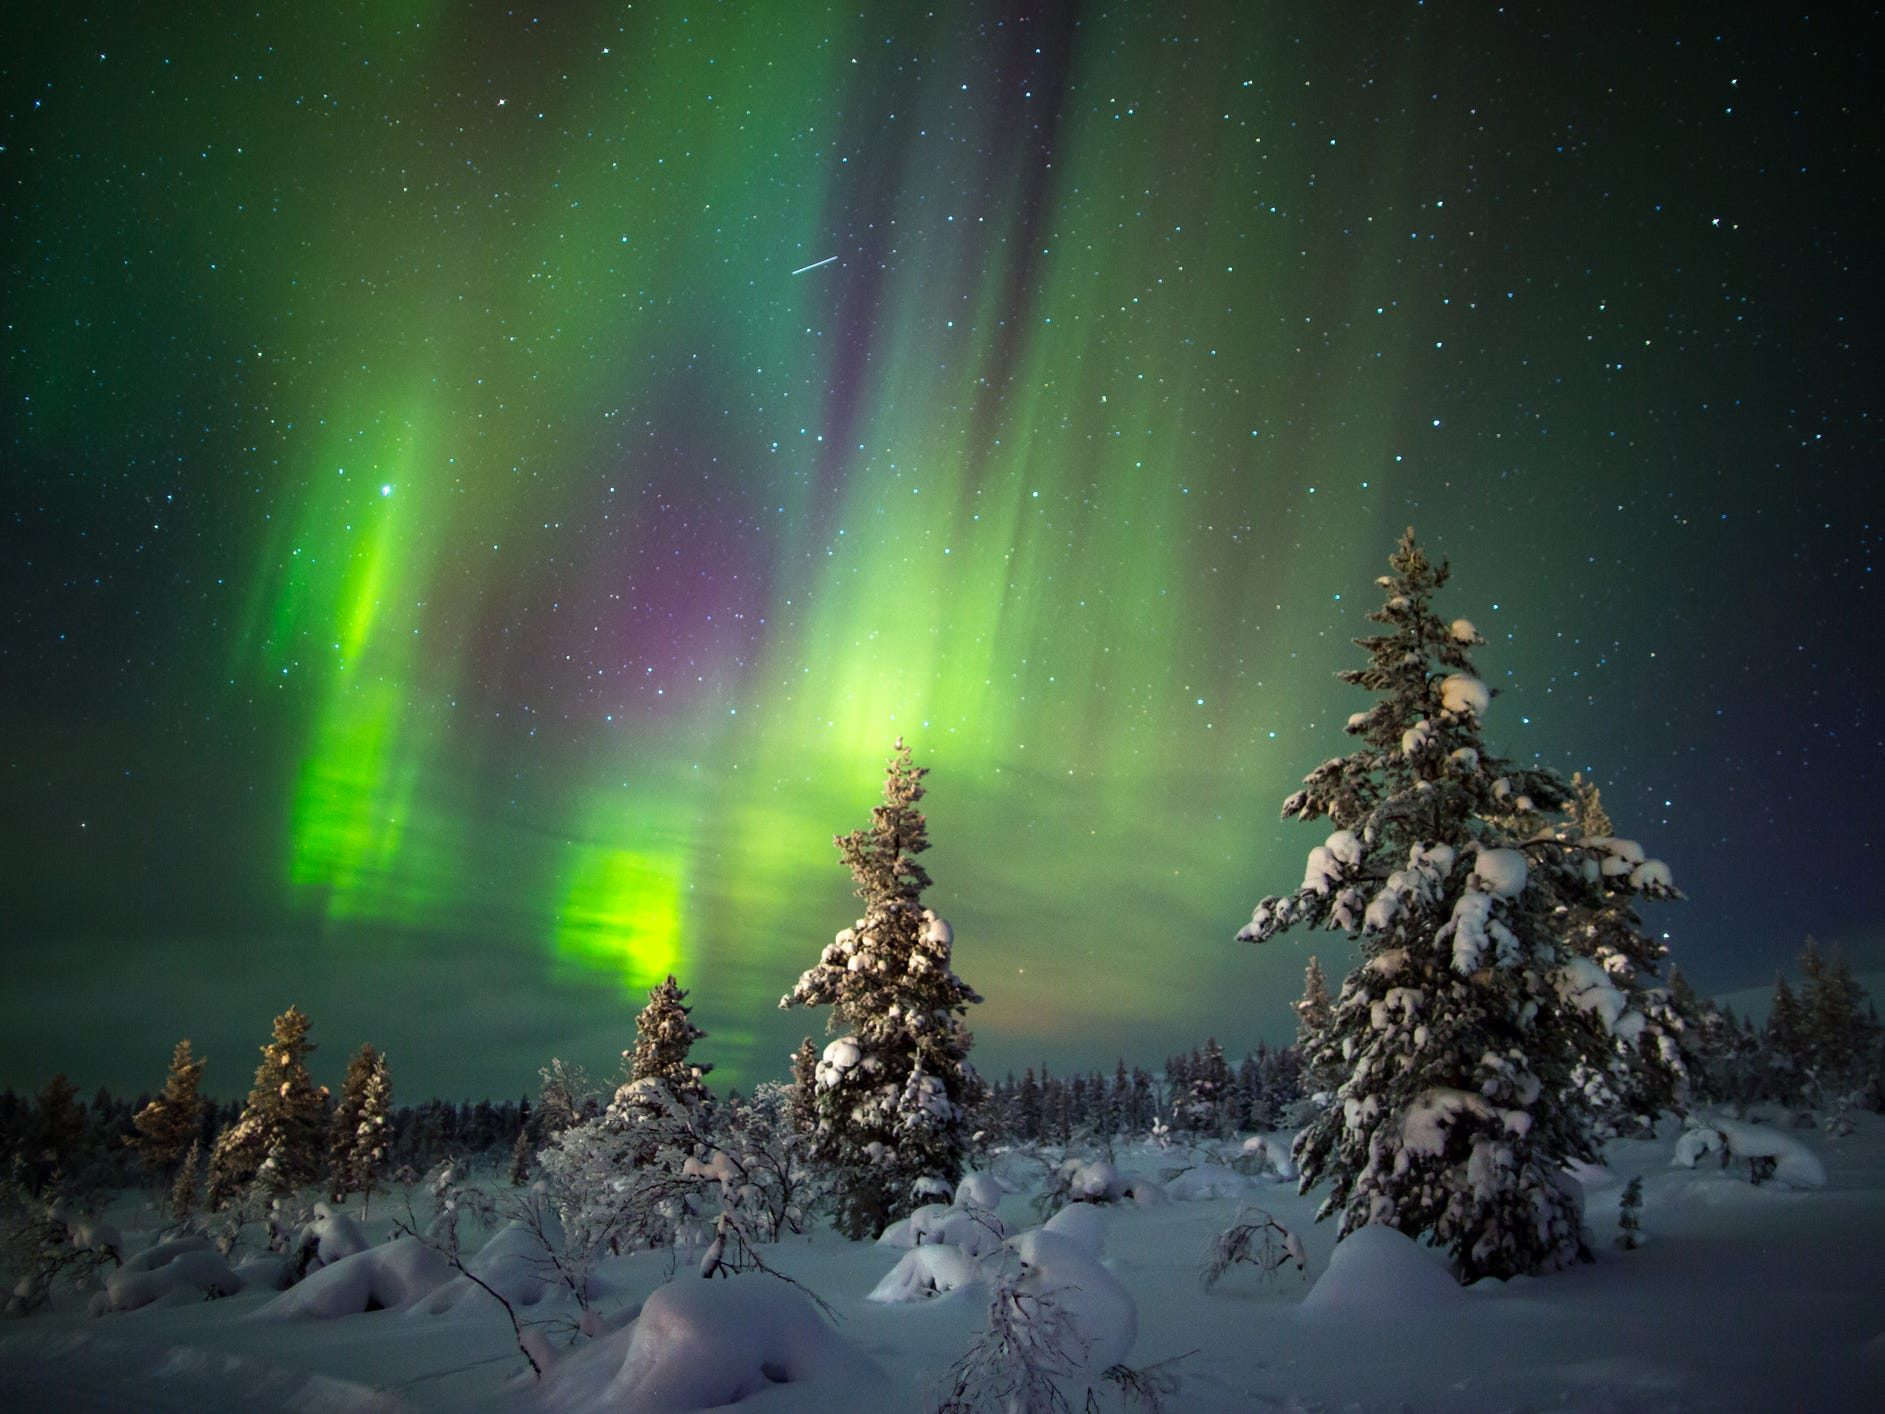 The northern lights in Finland.